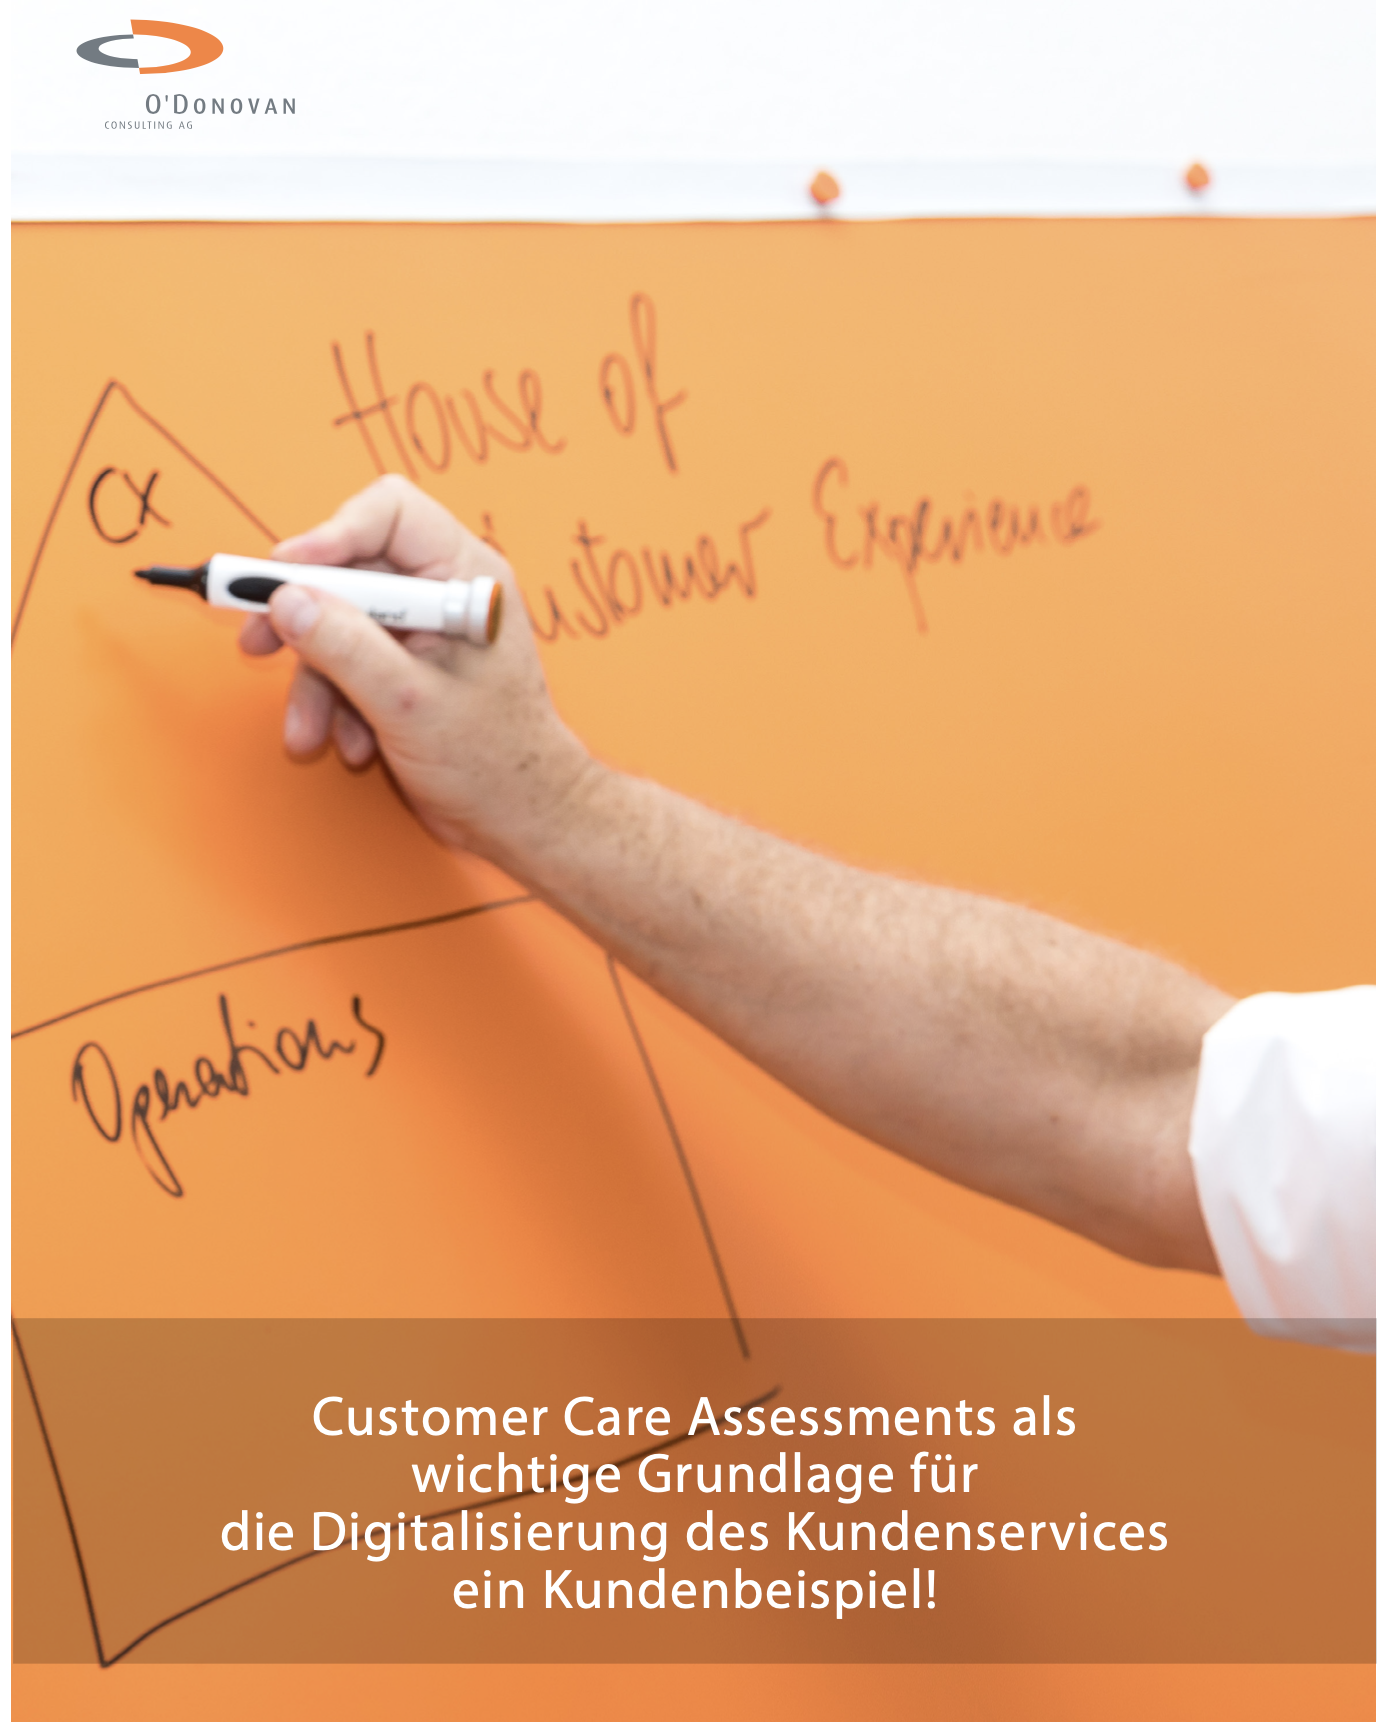 Customer Care Assessments